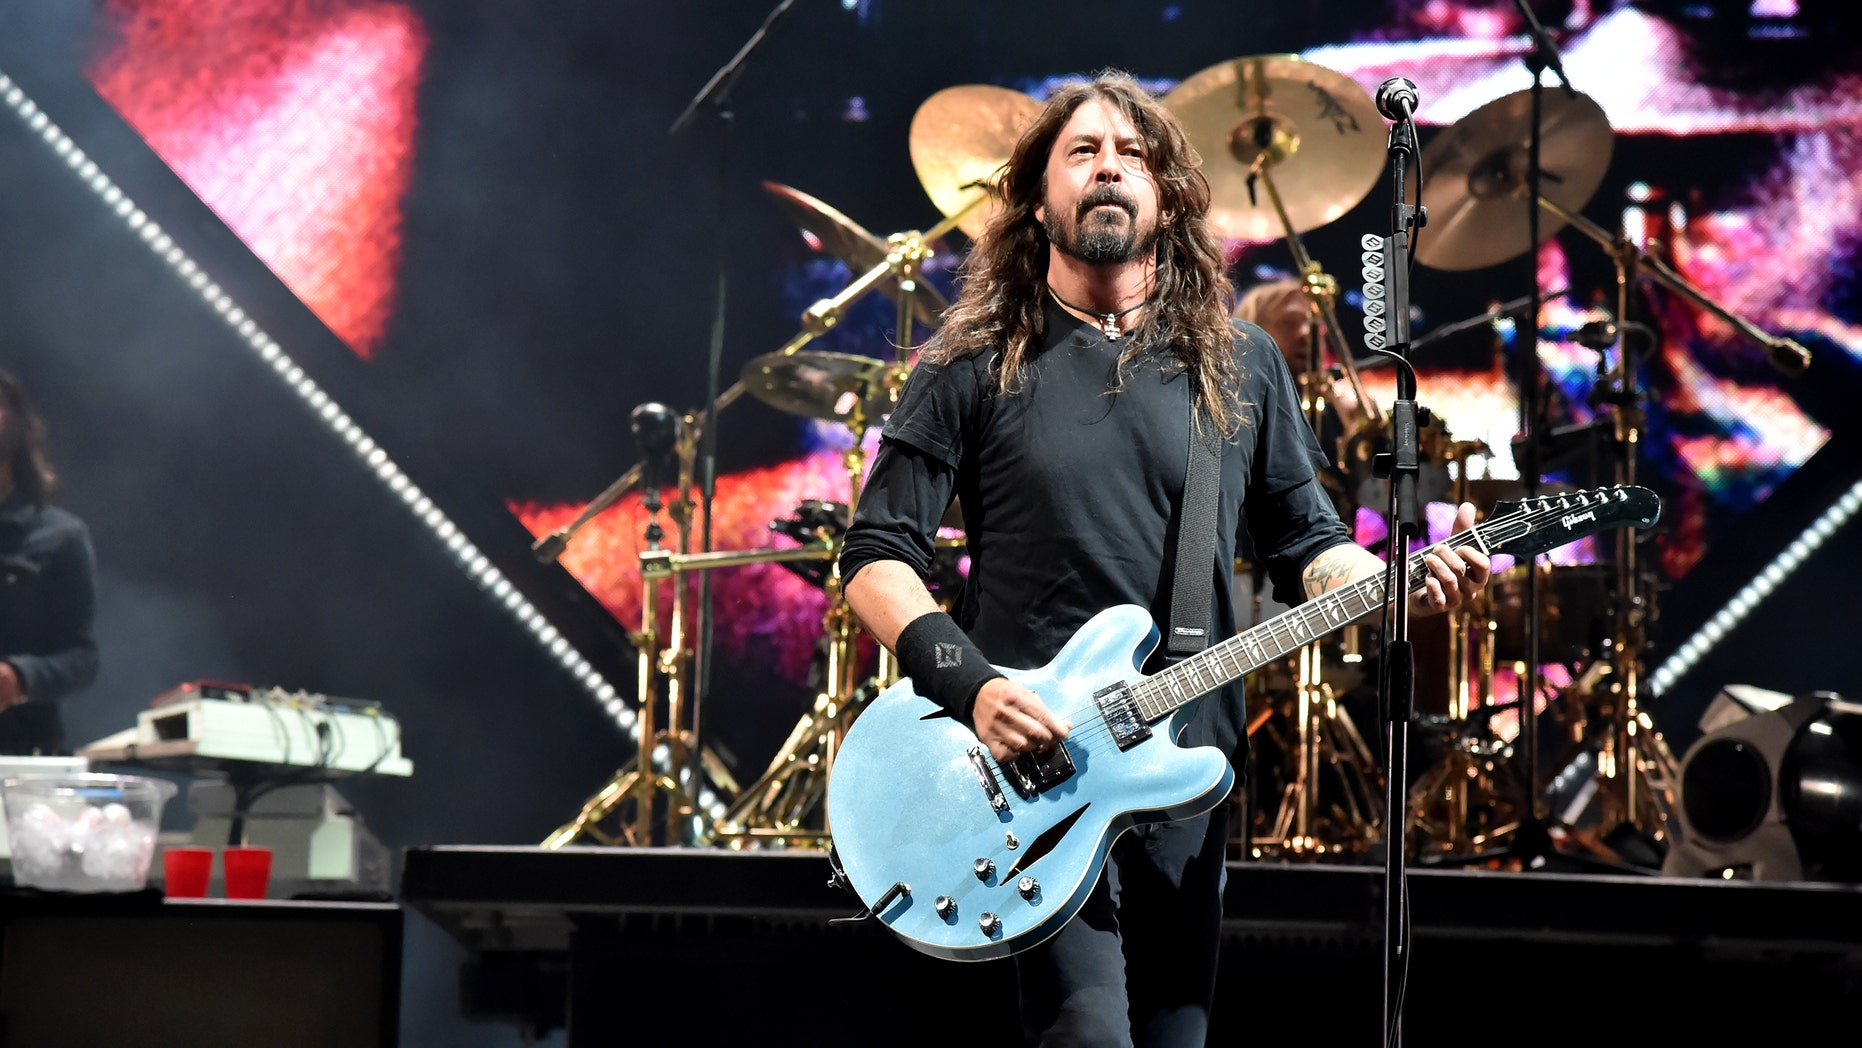 Foo Fighters frontman Dave Grohl fell off the stage after chopping a beer in front of the audience at a new concert.